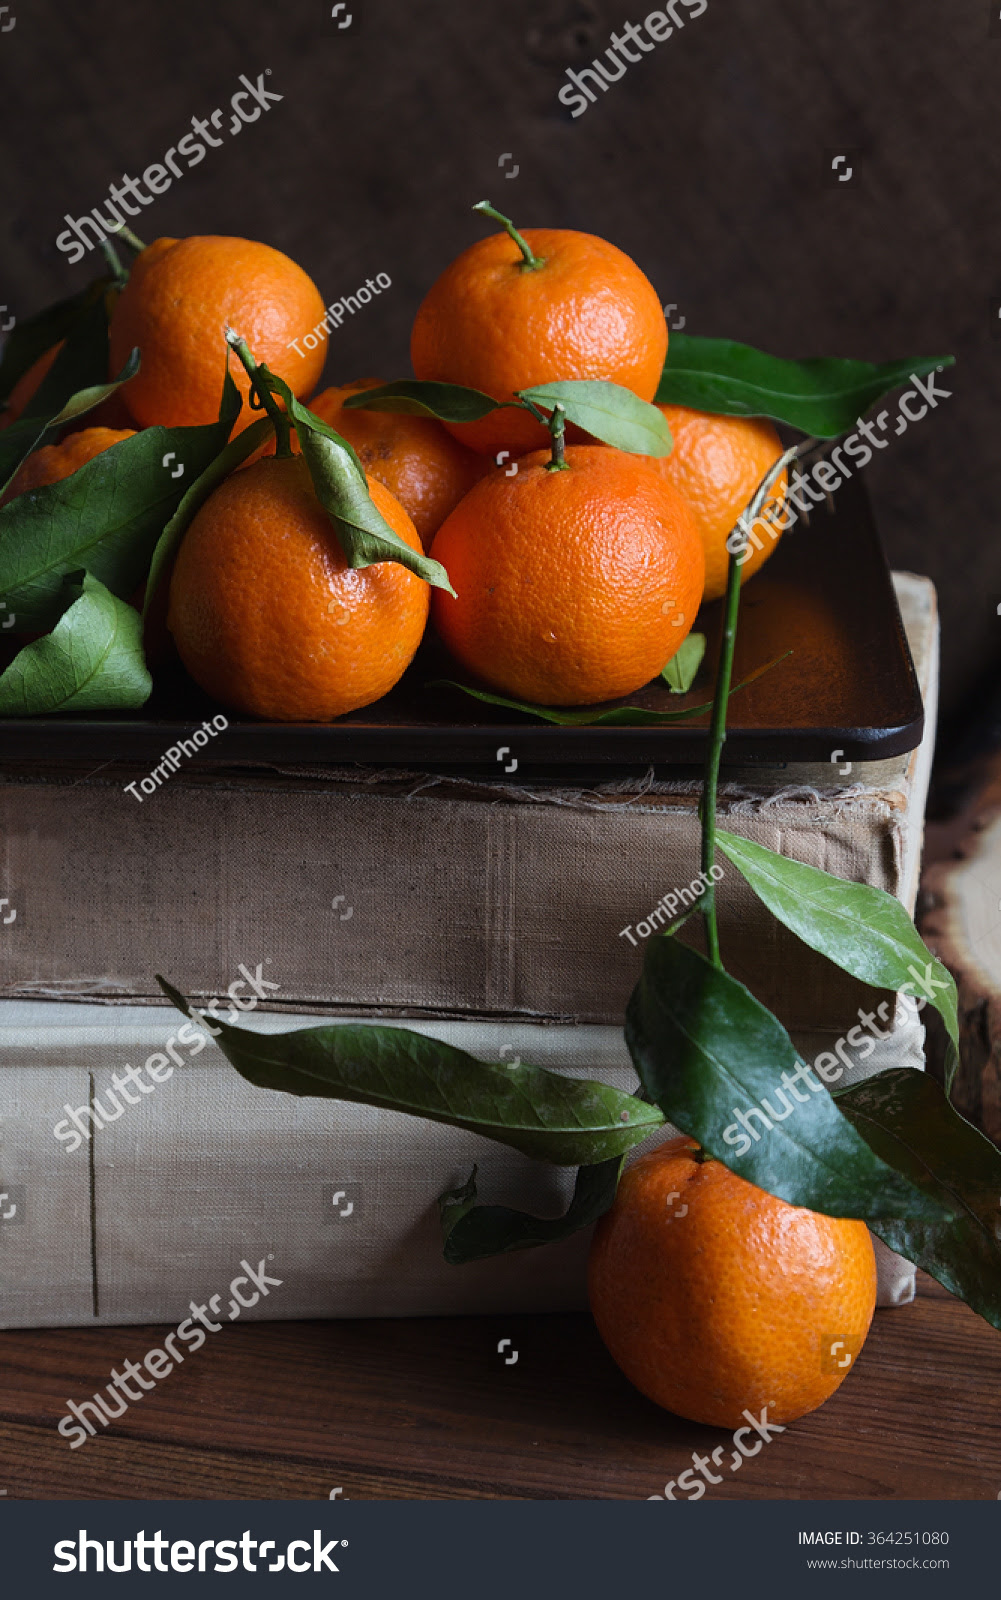 http://www.shutterstock.com/pic-364251080/stock-photo-mandarin-on-dark-wooden-background-vintage-style-shallow-focus.html